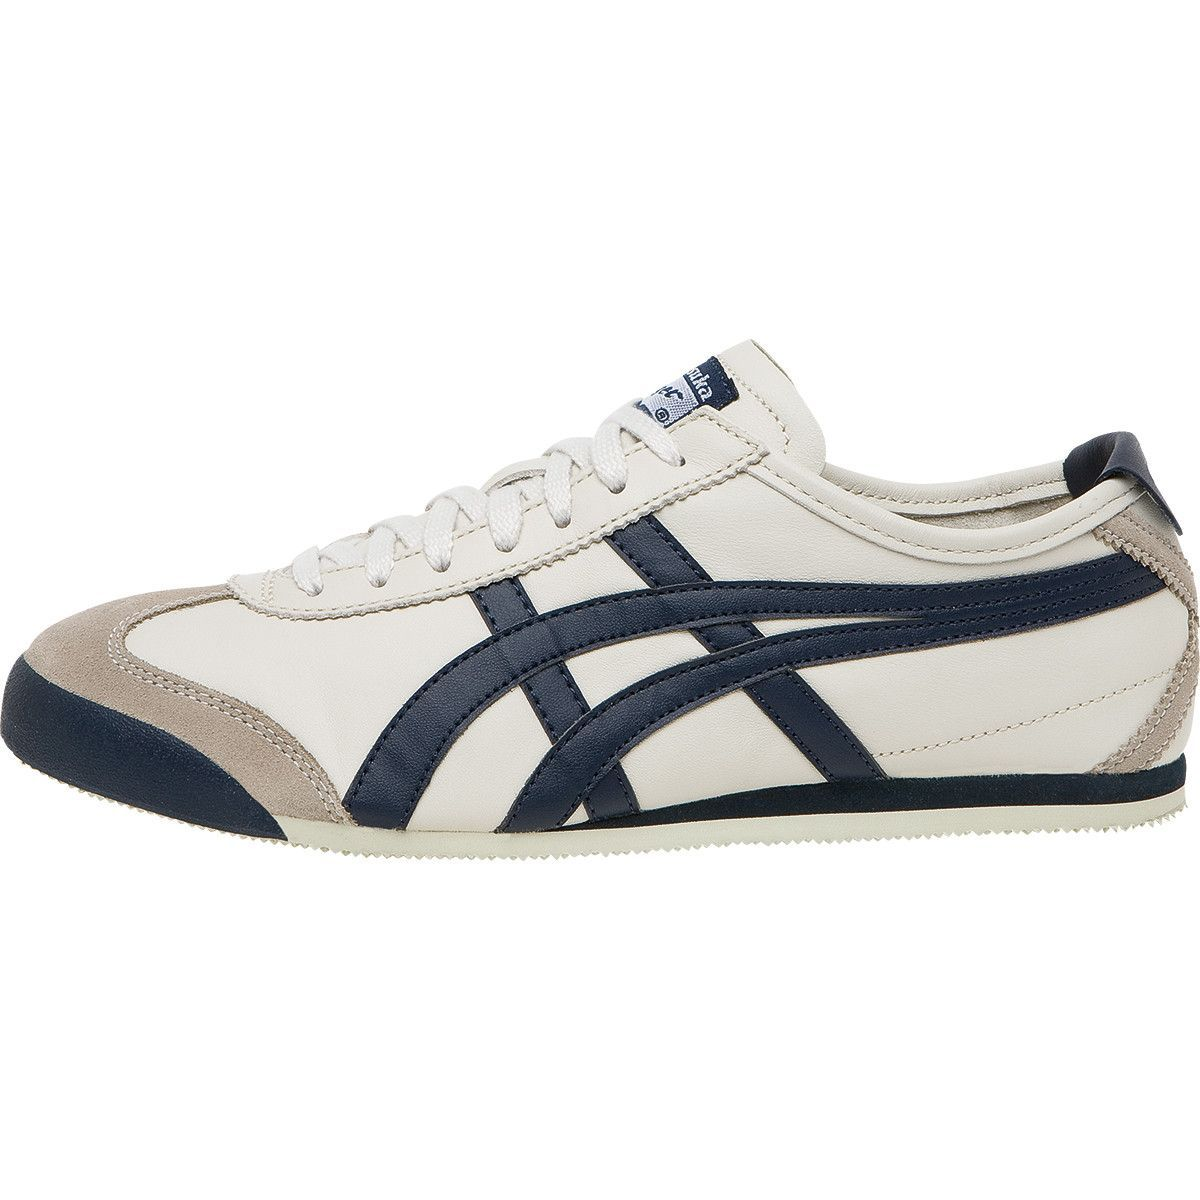 Onitsuka Tiger - Mexico 66 Sneaker - Birch Indian Ink  f017c99010f4